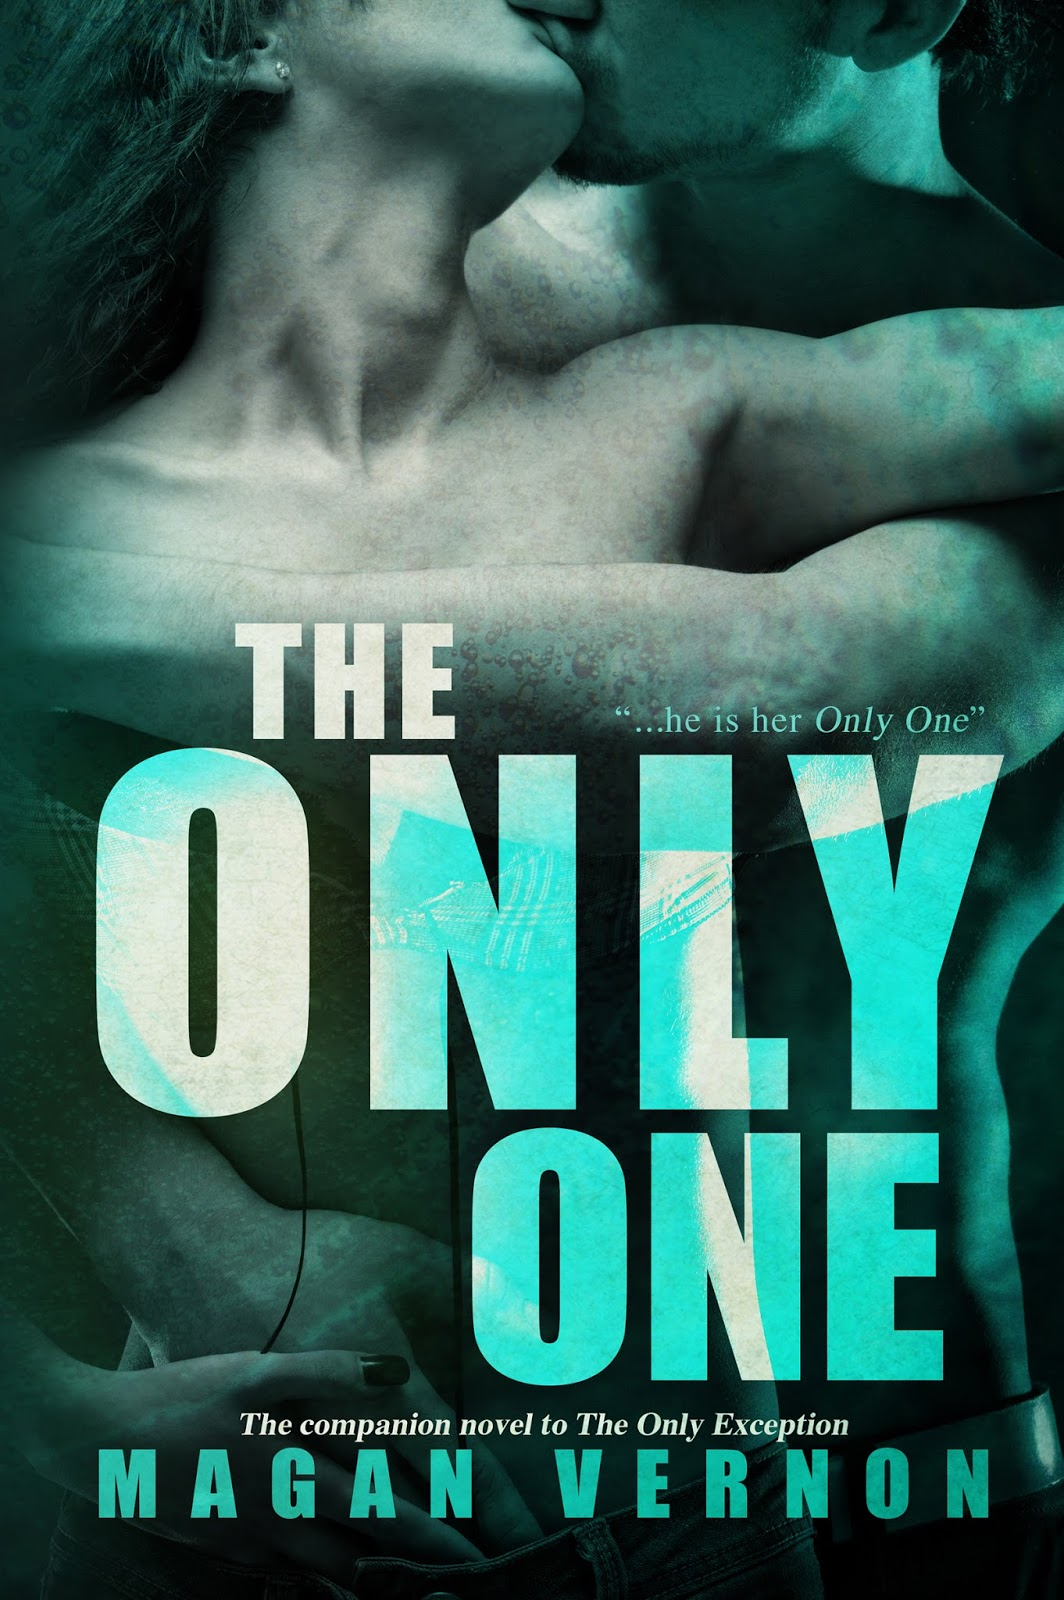 Book Review: The Only One by Magan Vernon